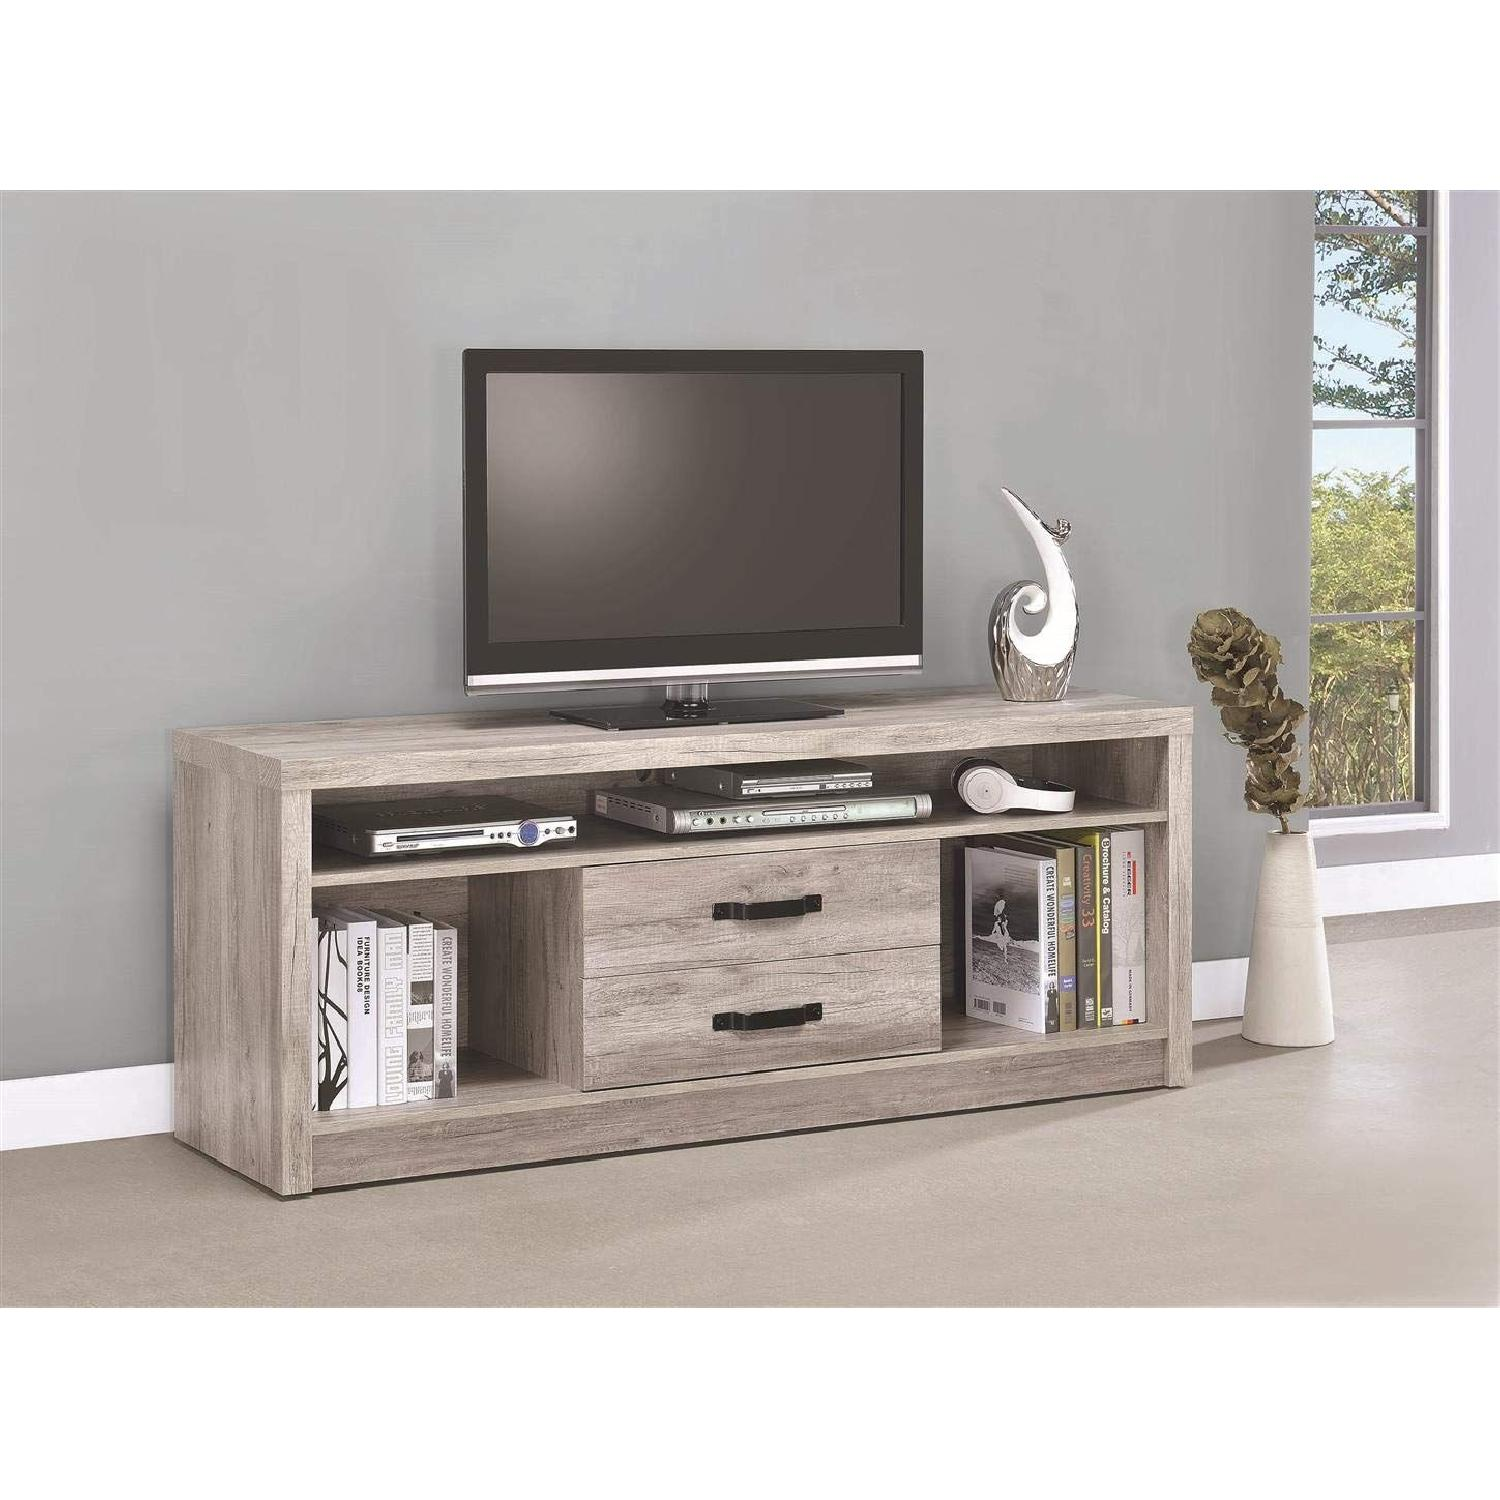 TV Stand In Rustic Oak Finish w/ 2 Cabinets & 2 Drawers - image-21